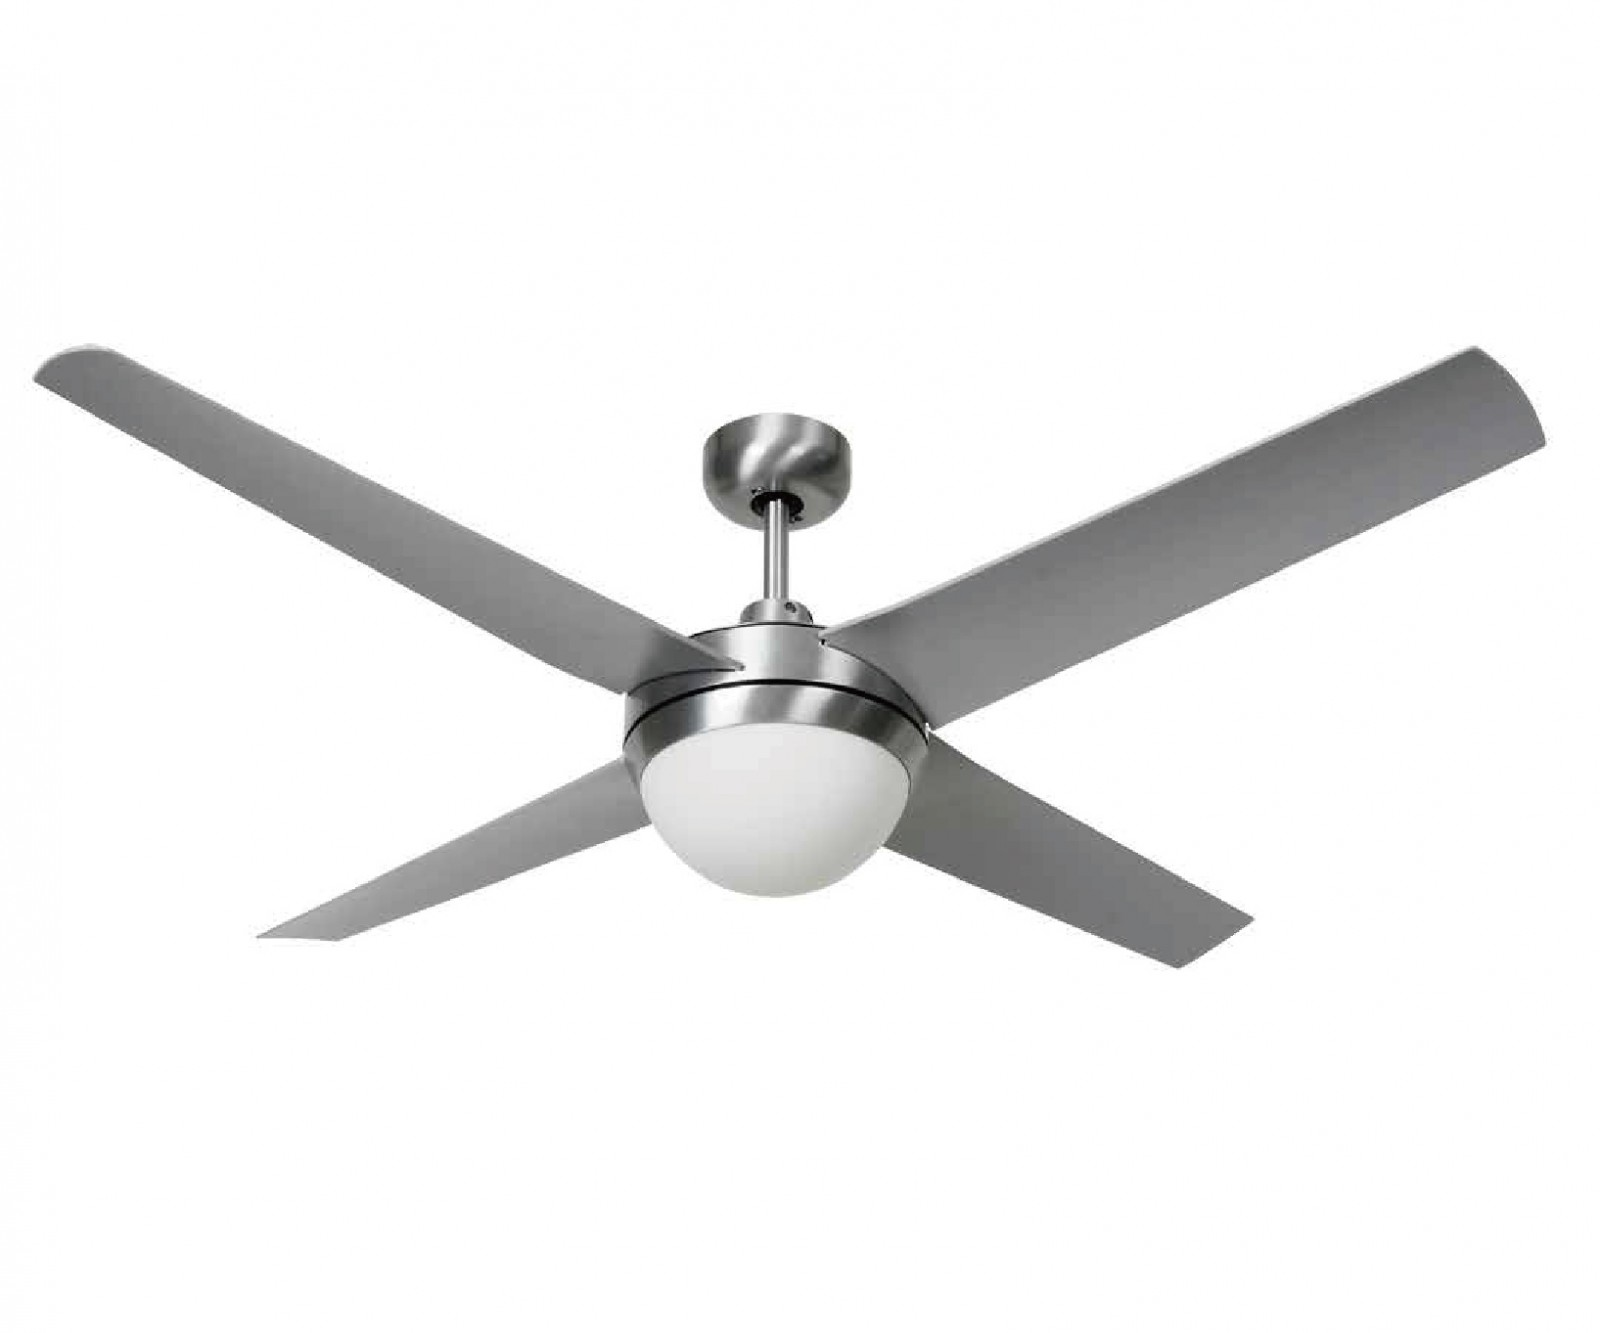 Beacon Outdoor Ceiling Fan Altitude Eco Silver With